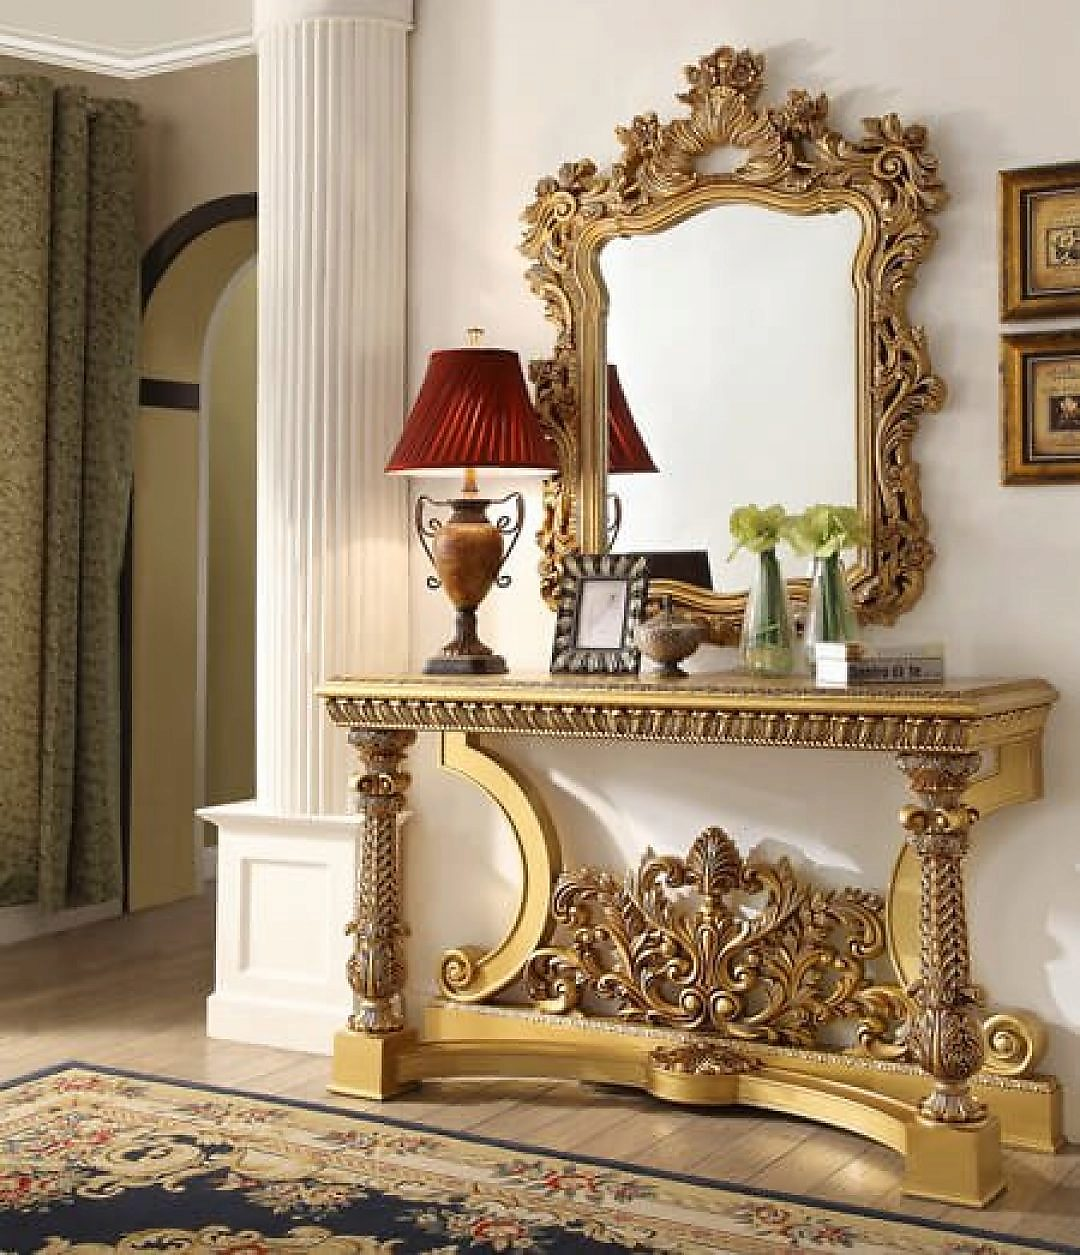 Traditional Royal HD-8016 Console Table in Gold by Homey Design